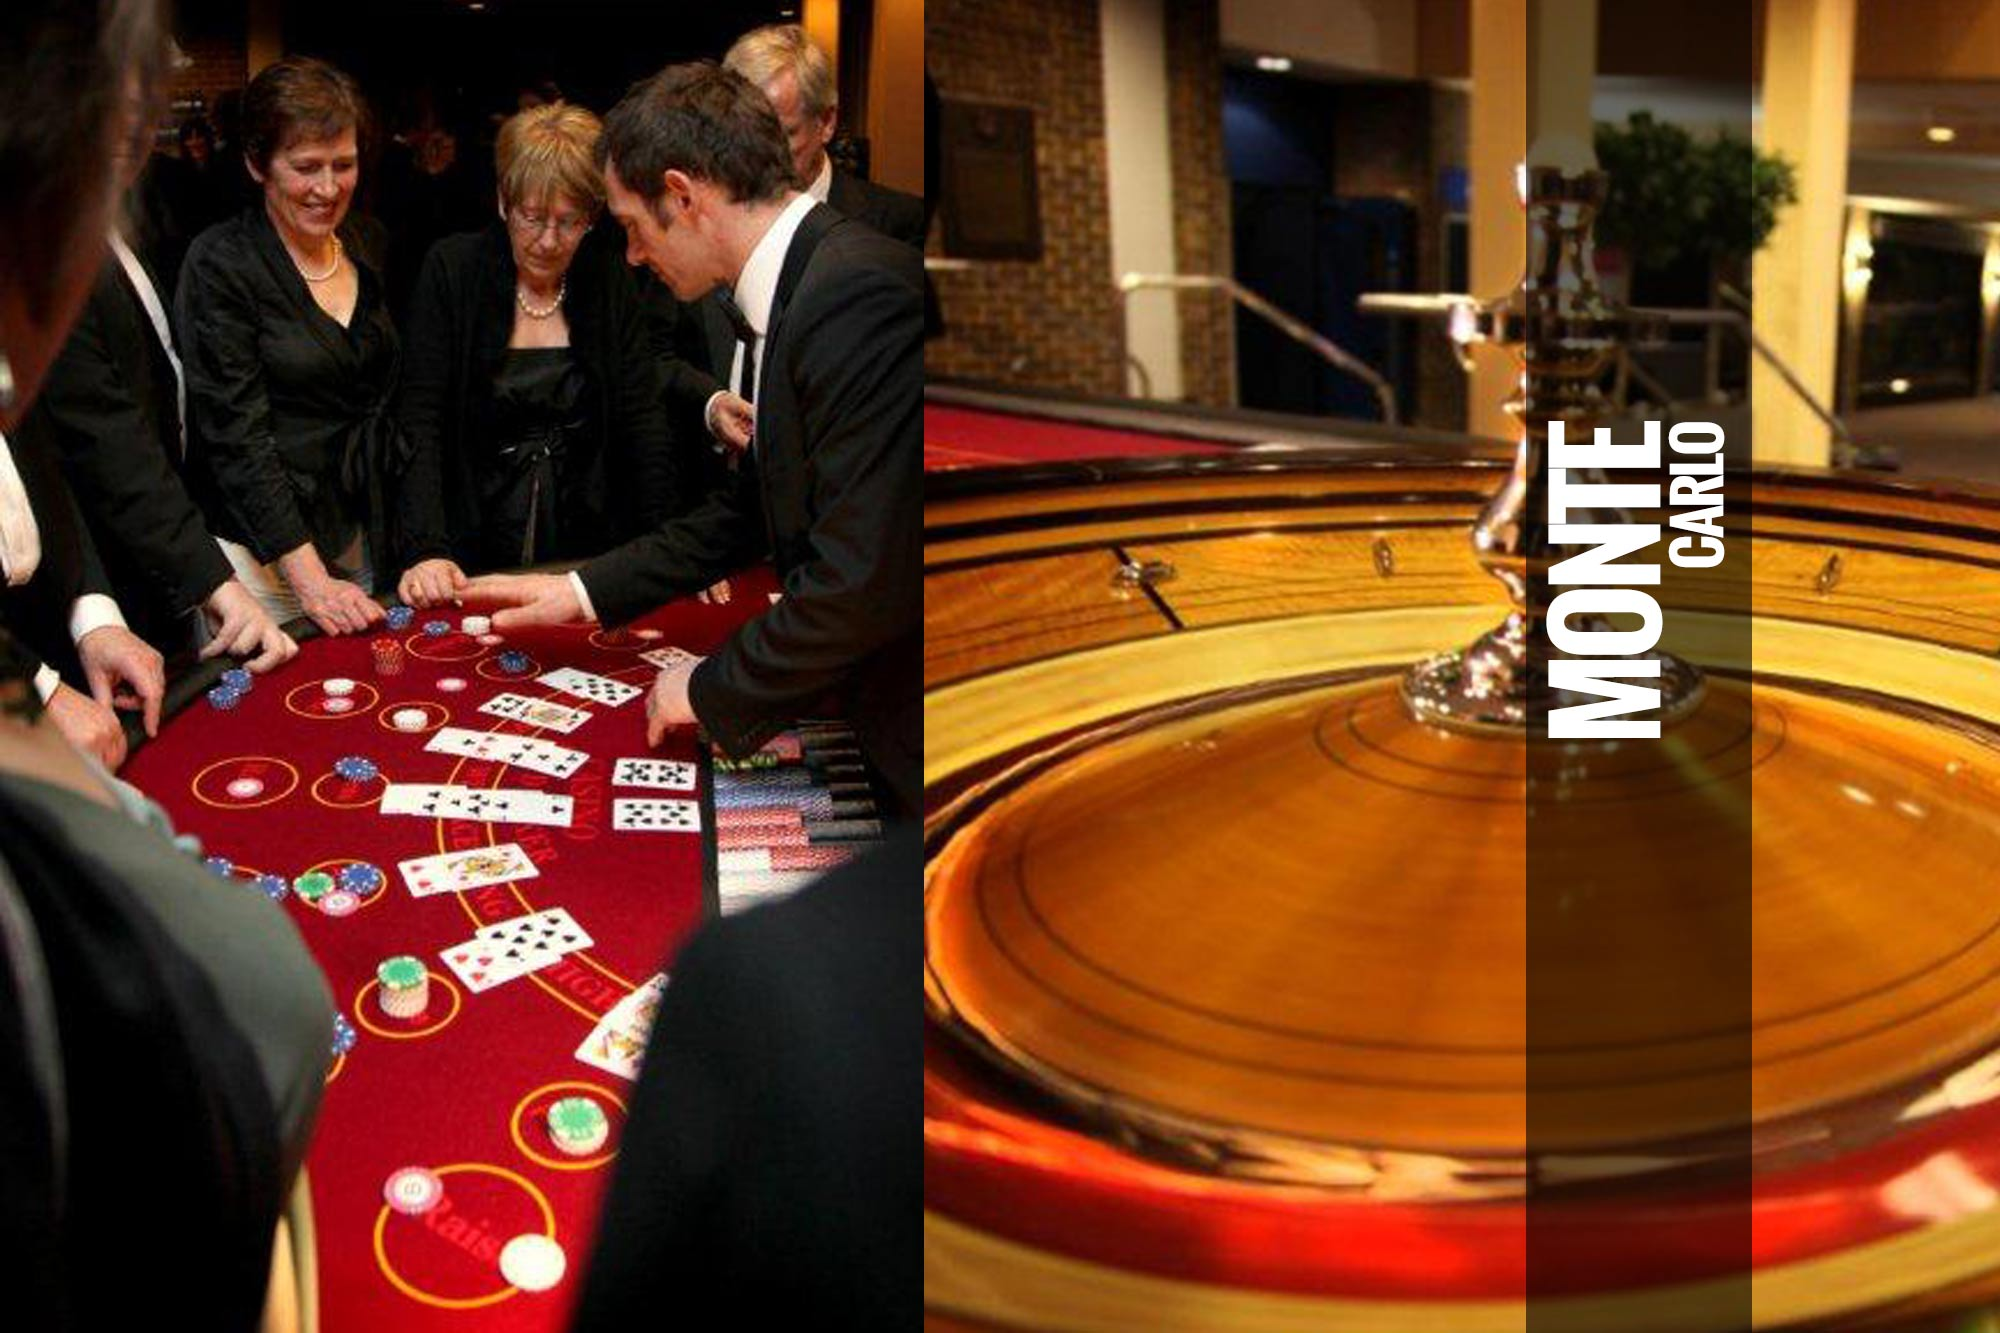 Monte Carlo Themed Events Amp Parties For Hire French